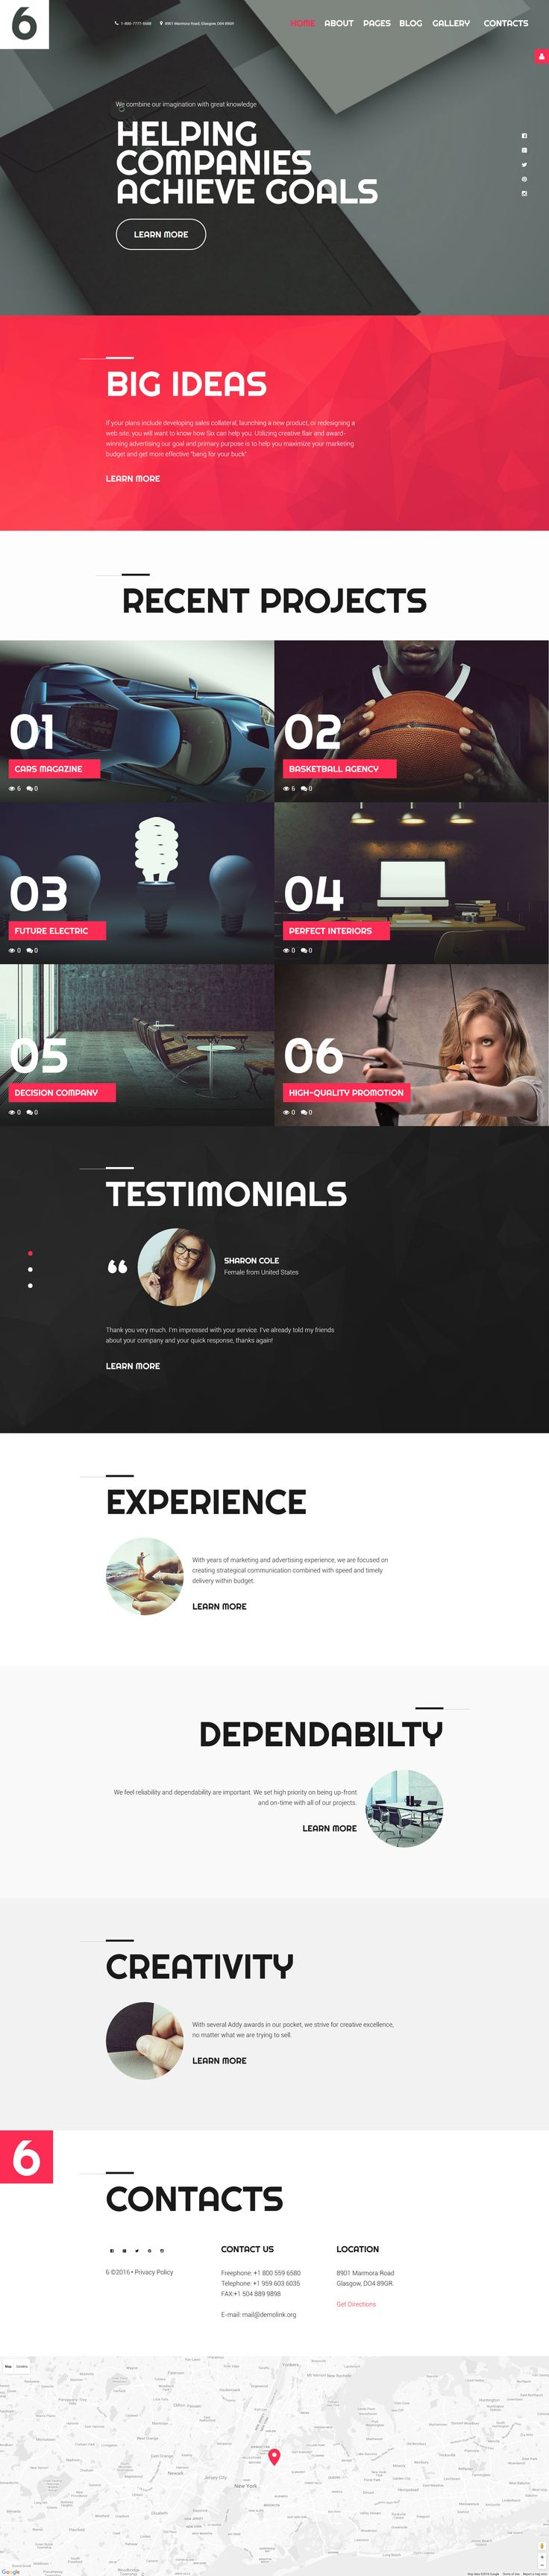 Advertising Agency Joomla Template http://www.templatemonster.com/joomla-templates/advertising-agency-joomla-template-58032.html